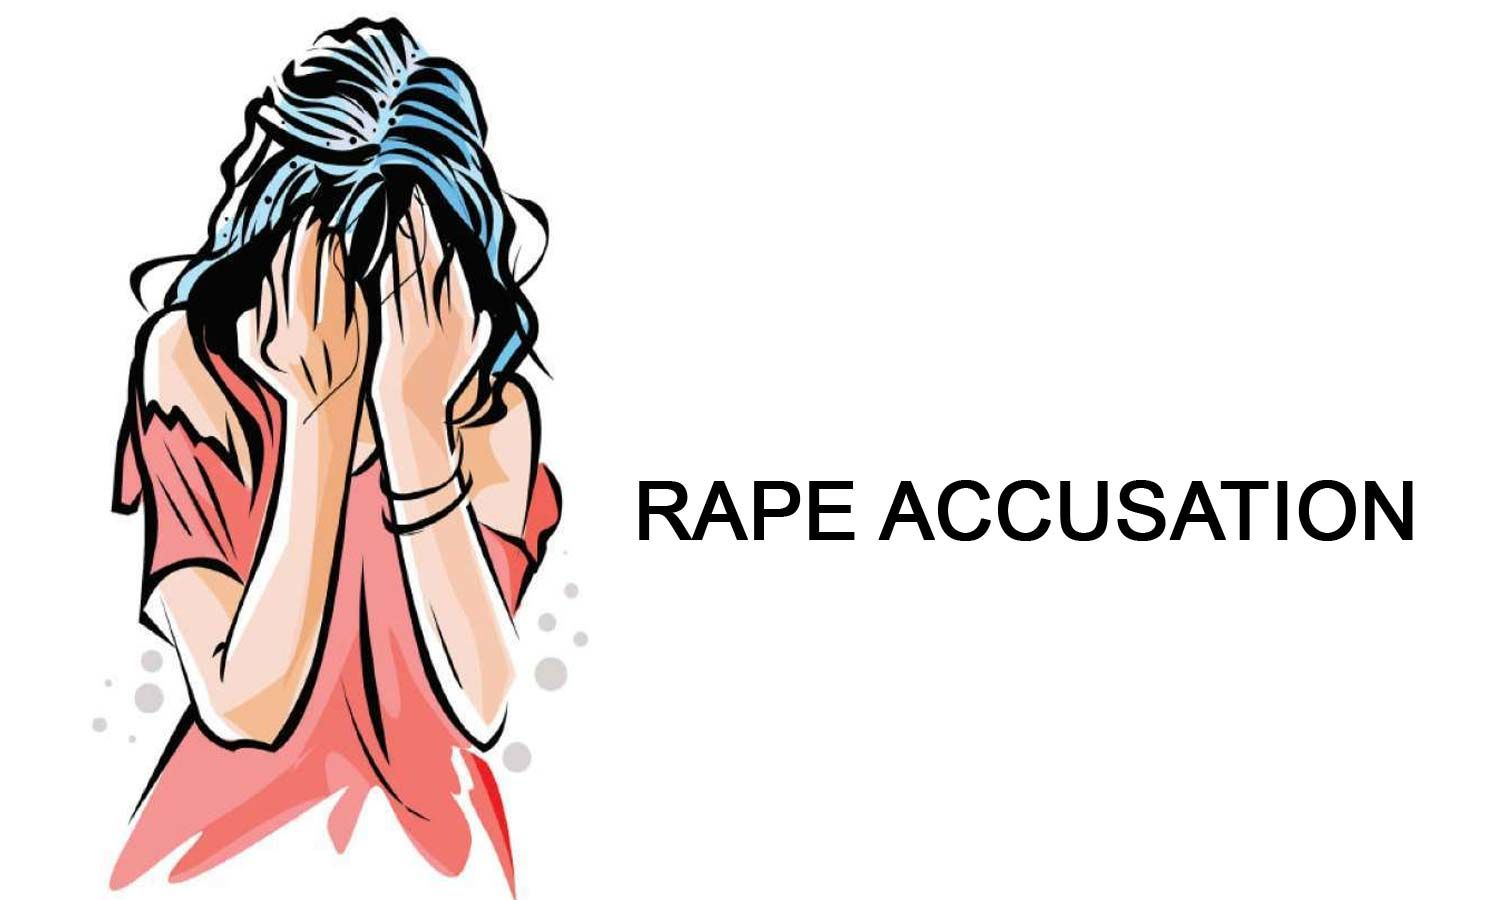 Raipur: MBBS doctor Booked After Ayurveda practitioner Alleges Rape, Sexual harassment